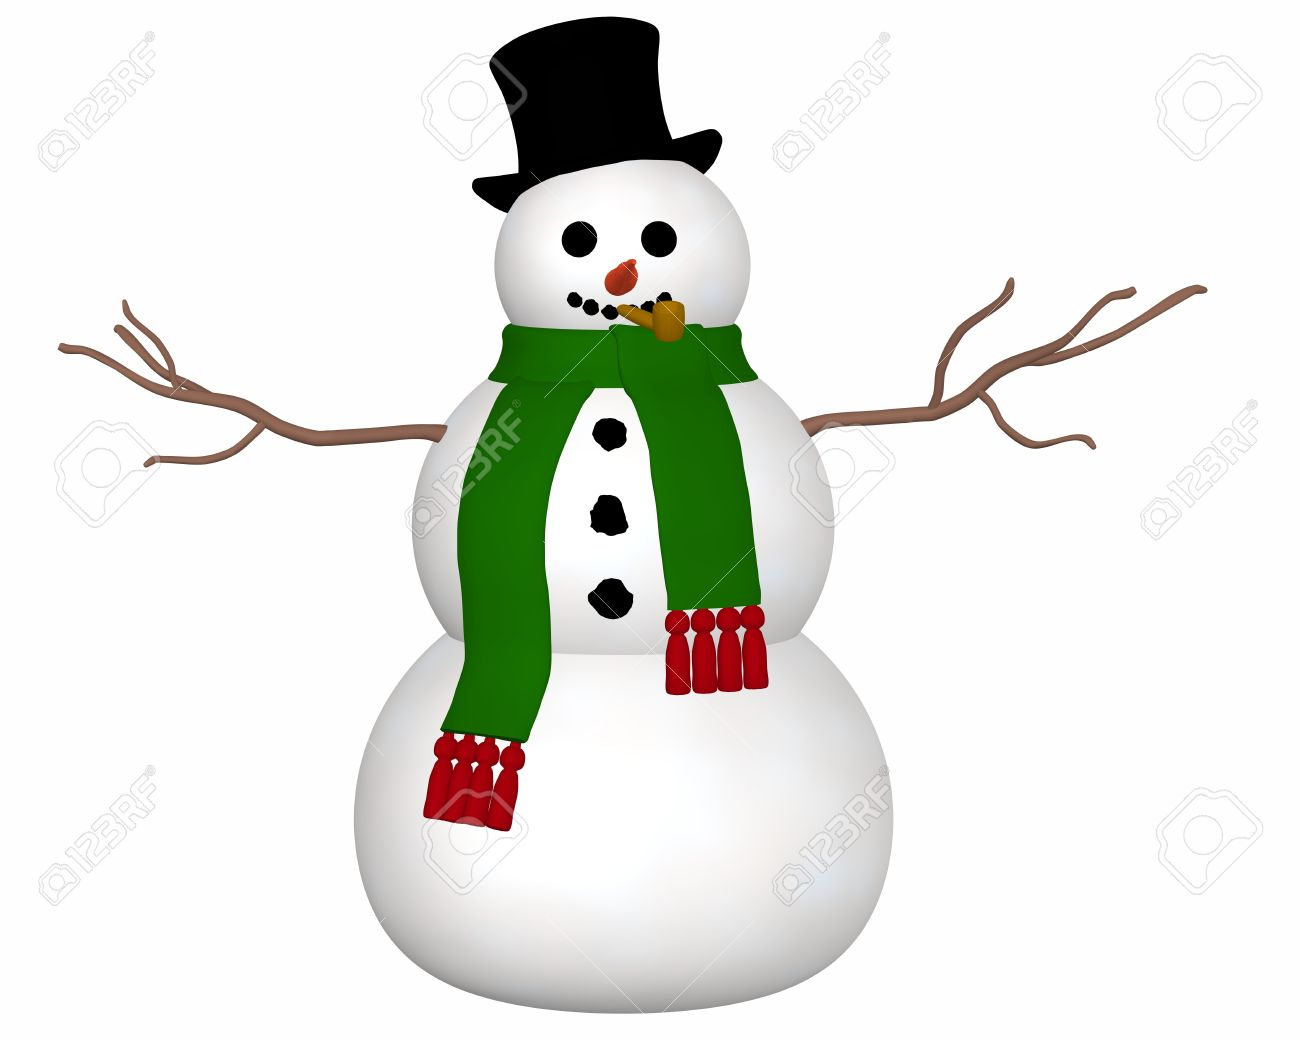 A front view illustration of a snowman wearing a black top hat and green scarf and a carrot nose. - 11277139